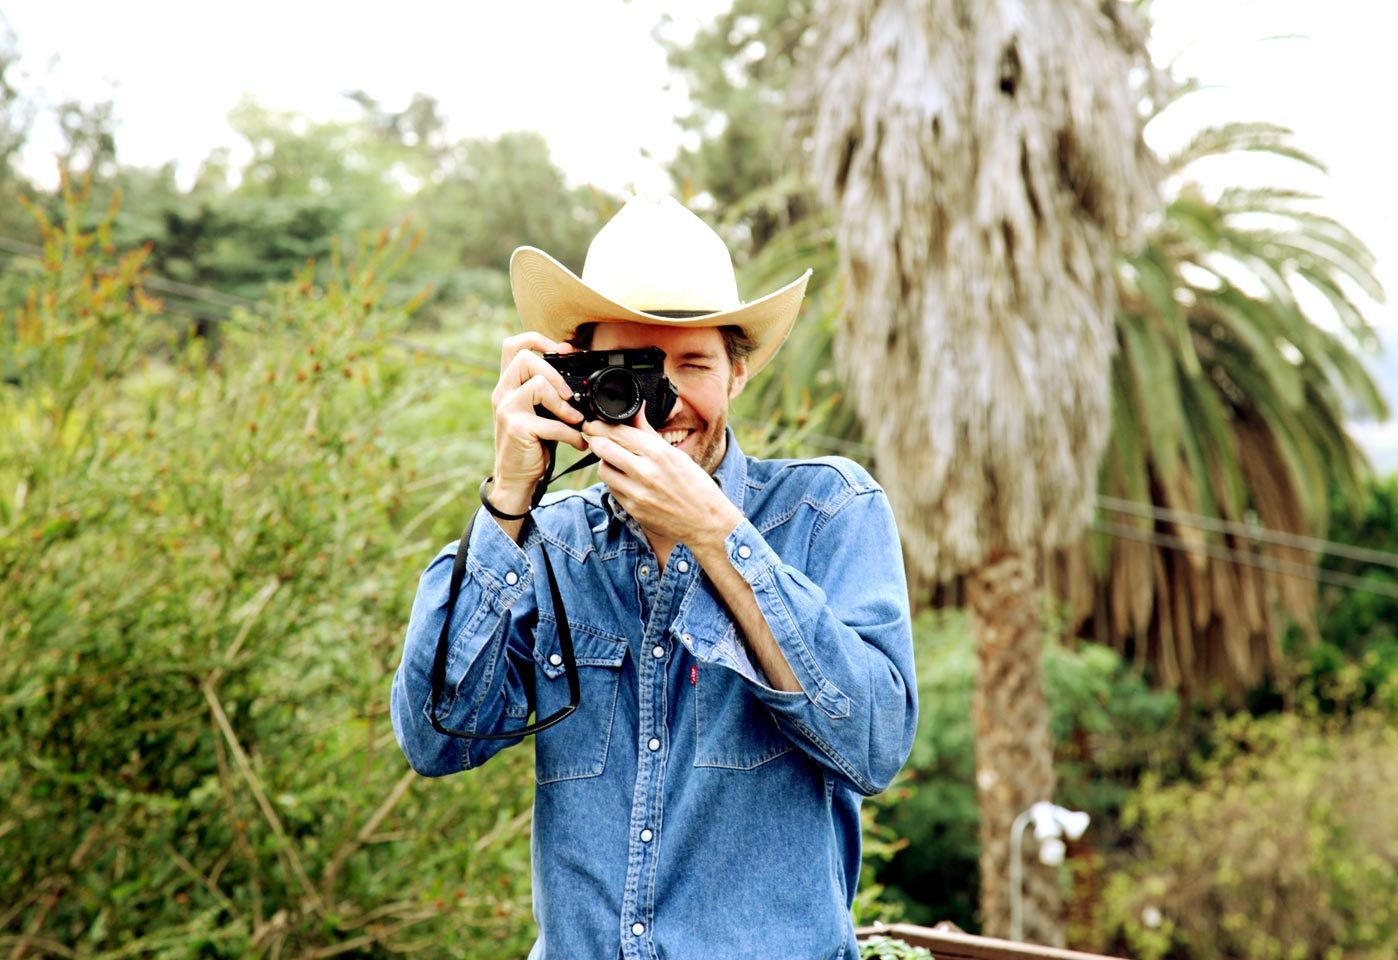 David Rawlings for Fretboard Journal